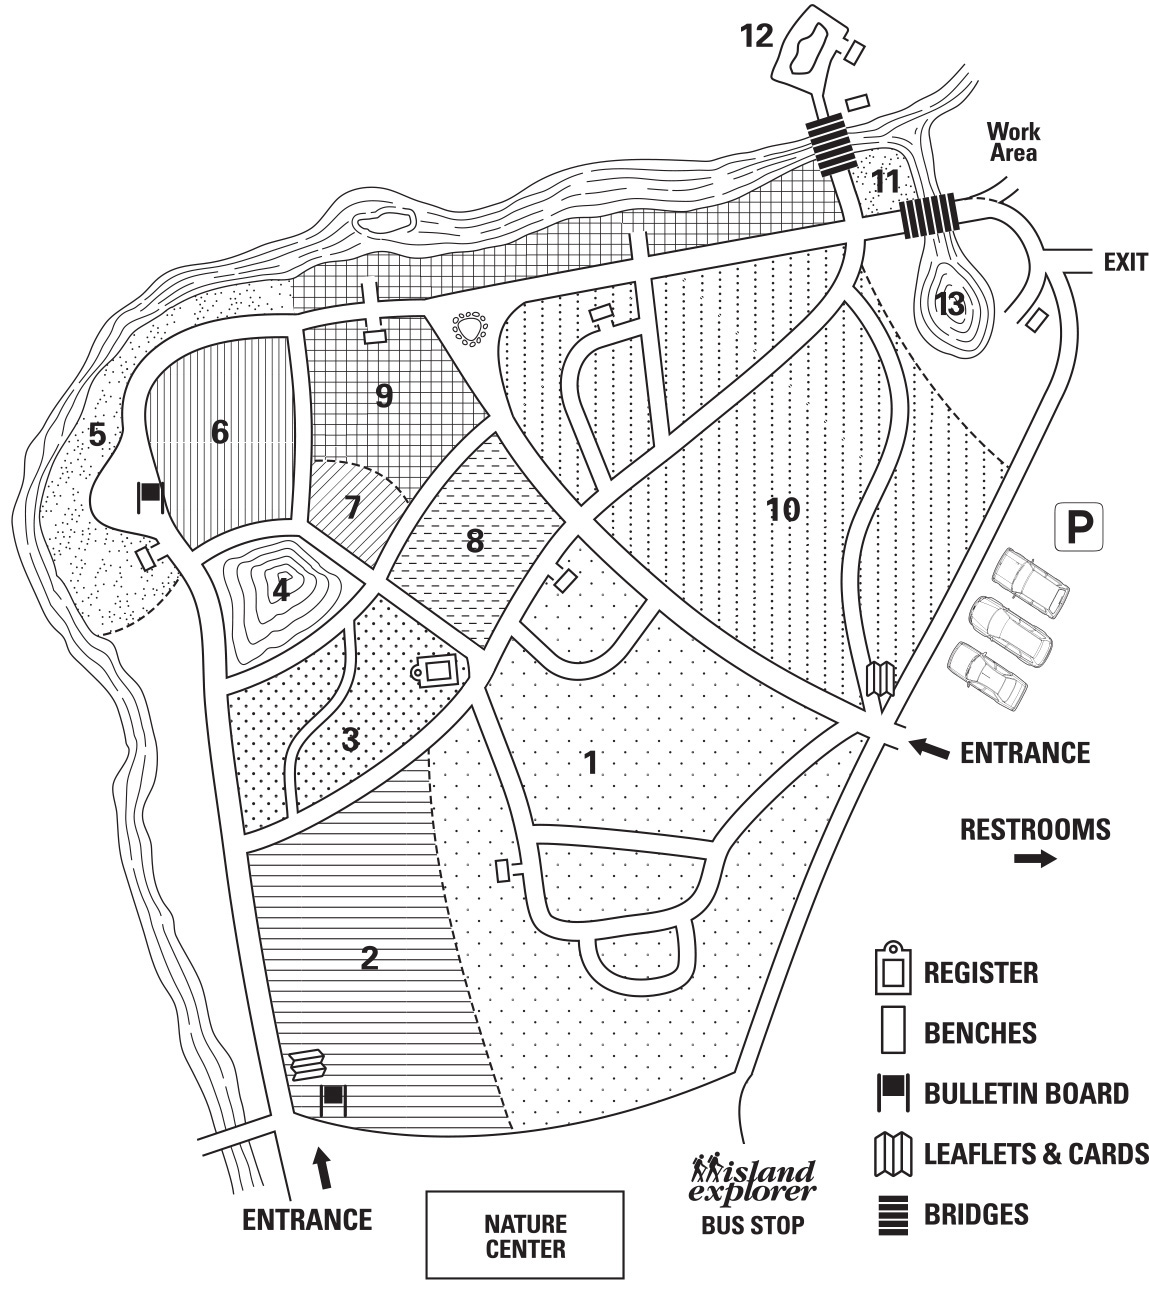 Visitors Map of the Wild Gardens of Acadia